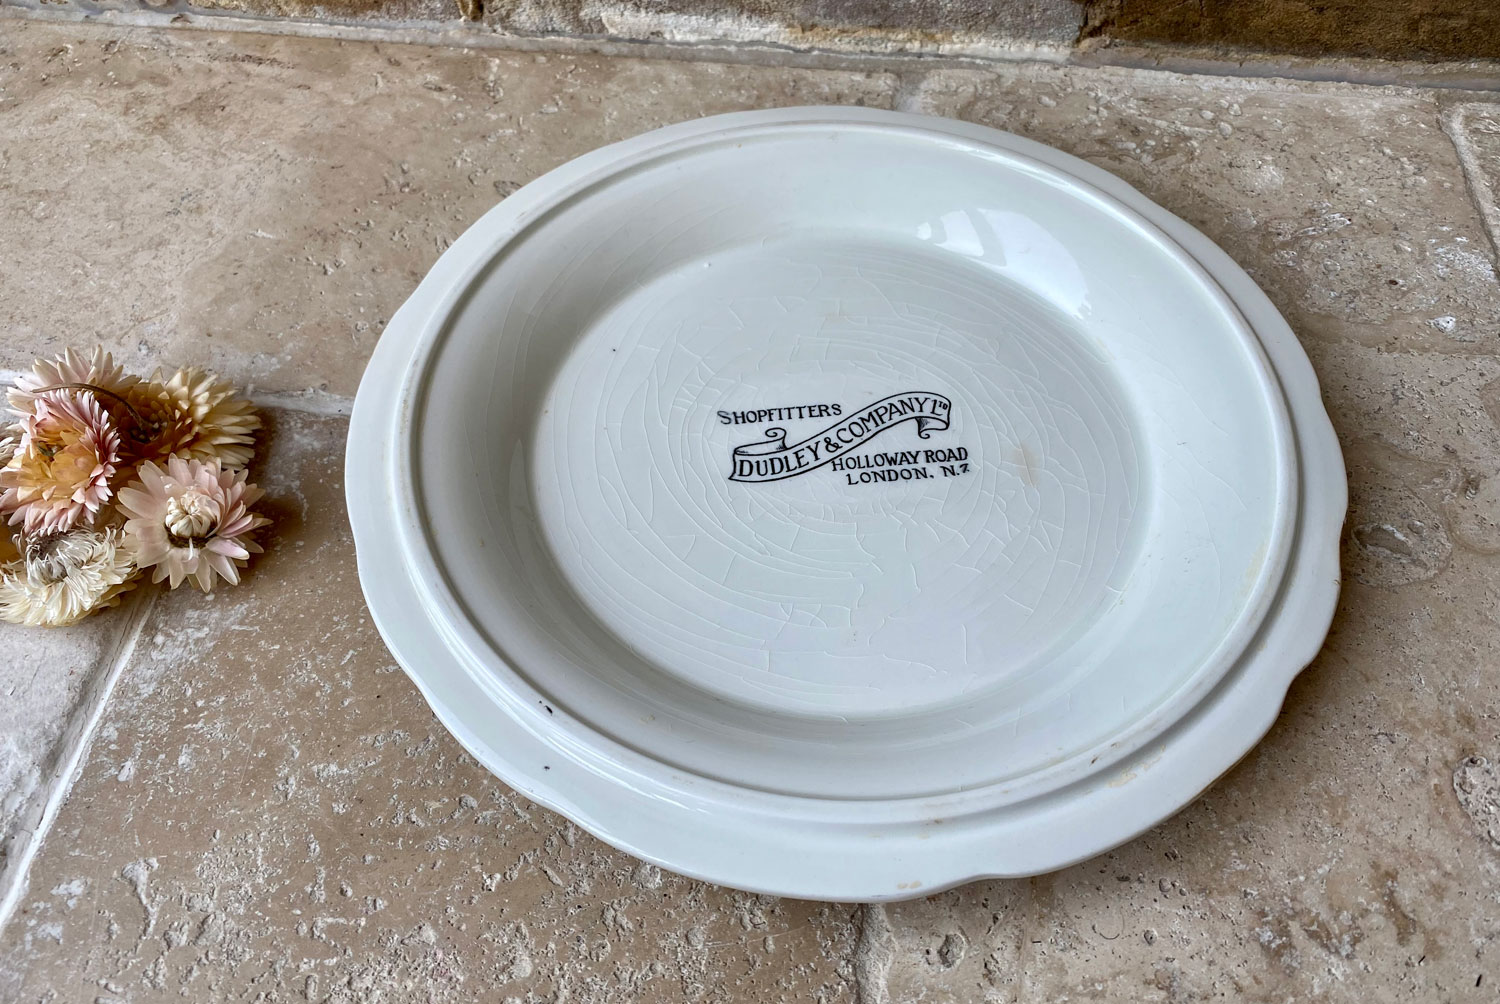 rare antique victorian white ironstone tongue plate platter advertising dudley company shopfitters